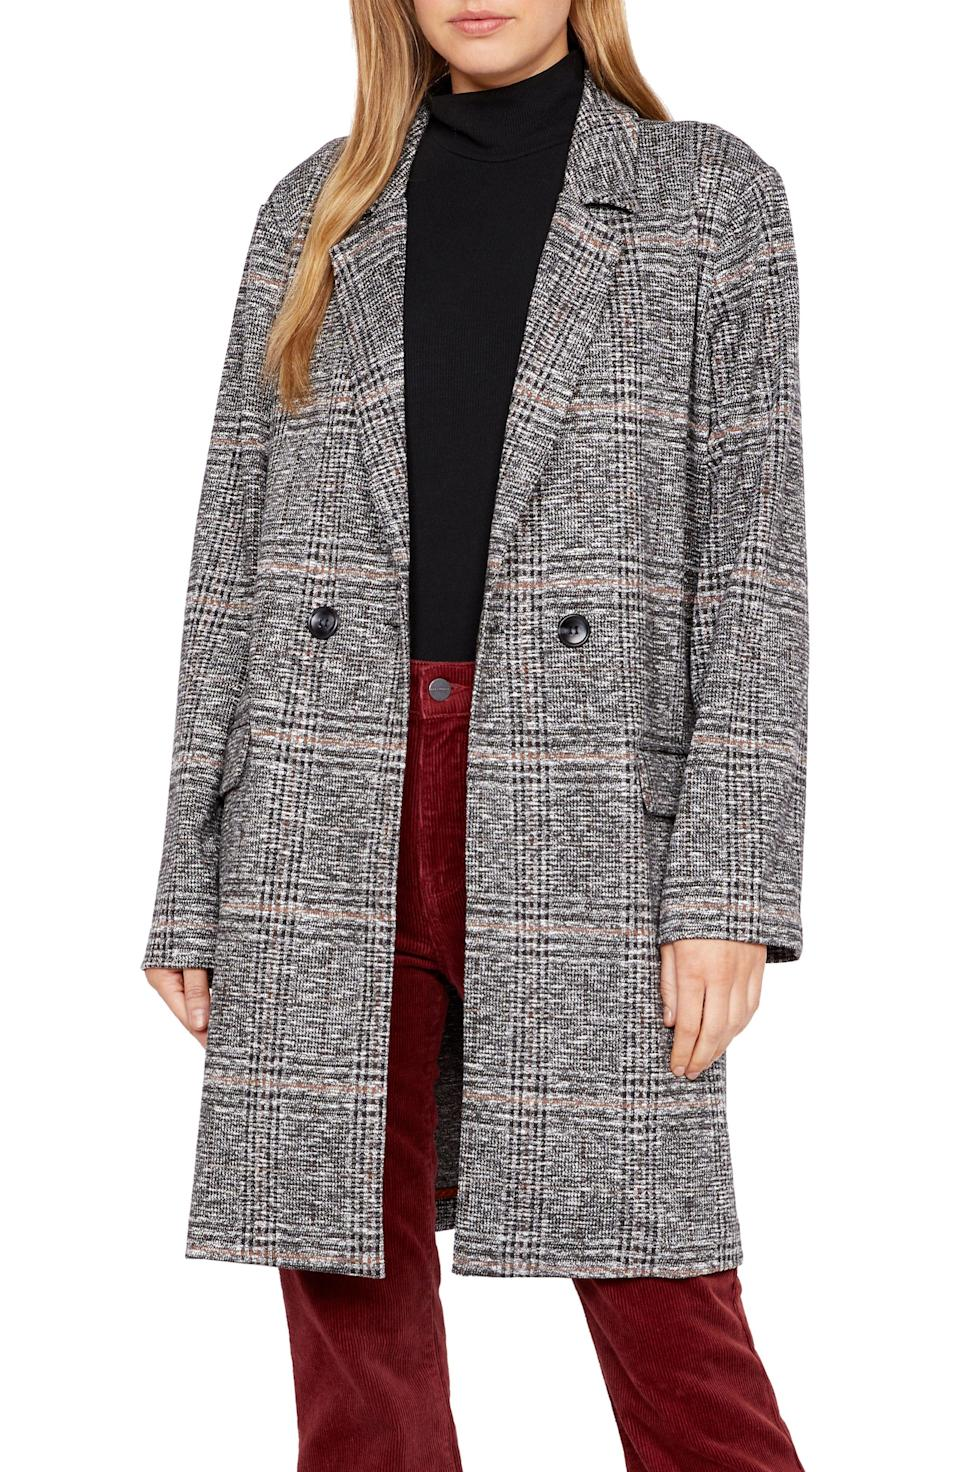 """<p><strong>SANCTUARY</strong></p><p>nordstrom.com</p><p><strong>$149.00</strong></p><p><a href=""""https://go.redirectingat.com?id=74968X1596630&url=https%3A%2F%2Fwww.nordstrom.com%2Fs%2Fsanctuary-carlyle-plaid-jacket%2F5704536&sref=https%3A%2F%2Fwww.cosmopolitan.com%2Fstyle-beauty%2Ffashion%2Fg28749279%2Ftypes-of-coats%2F"""" rel=""""nofollow noopener"""" target=""""_blank"""" data-ylk=""""slk:Shop Now"""" class=""""link rapid-noclick-resp"""">Shop Now</a></p><p>Like the name suggests, these are a longer overcoat style and have a sleek, simple silhouette. This one with its single button, knee-length, and plaid print is undoubtedly chic. </p>"""